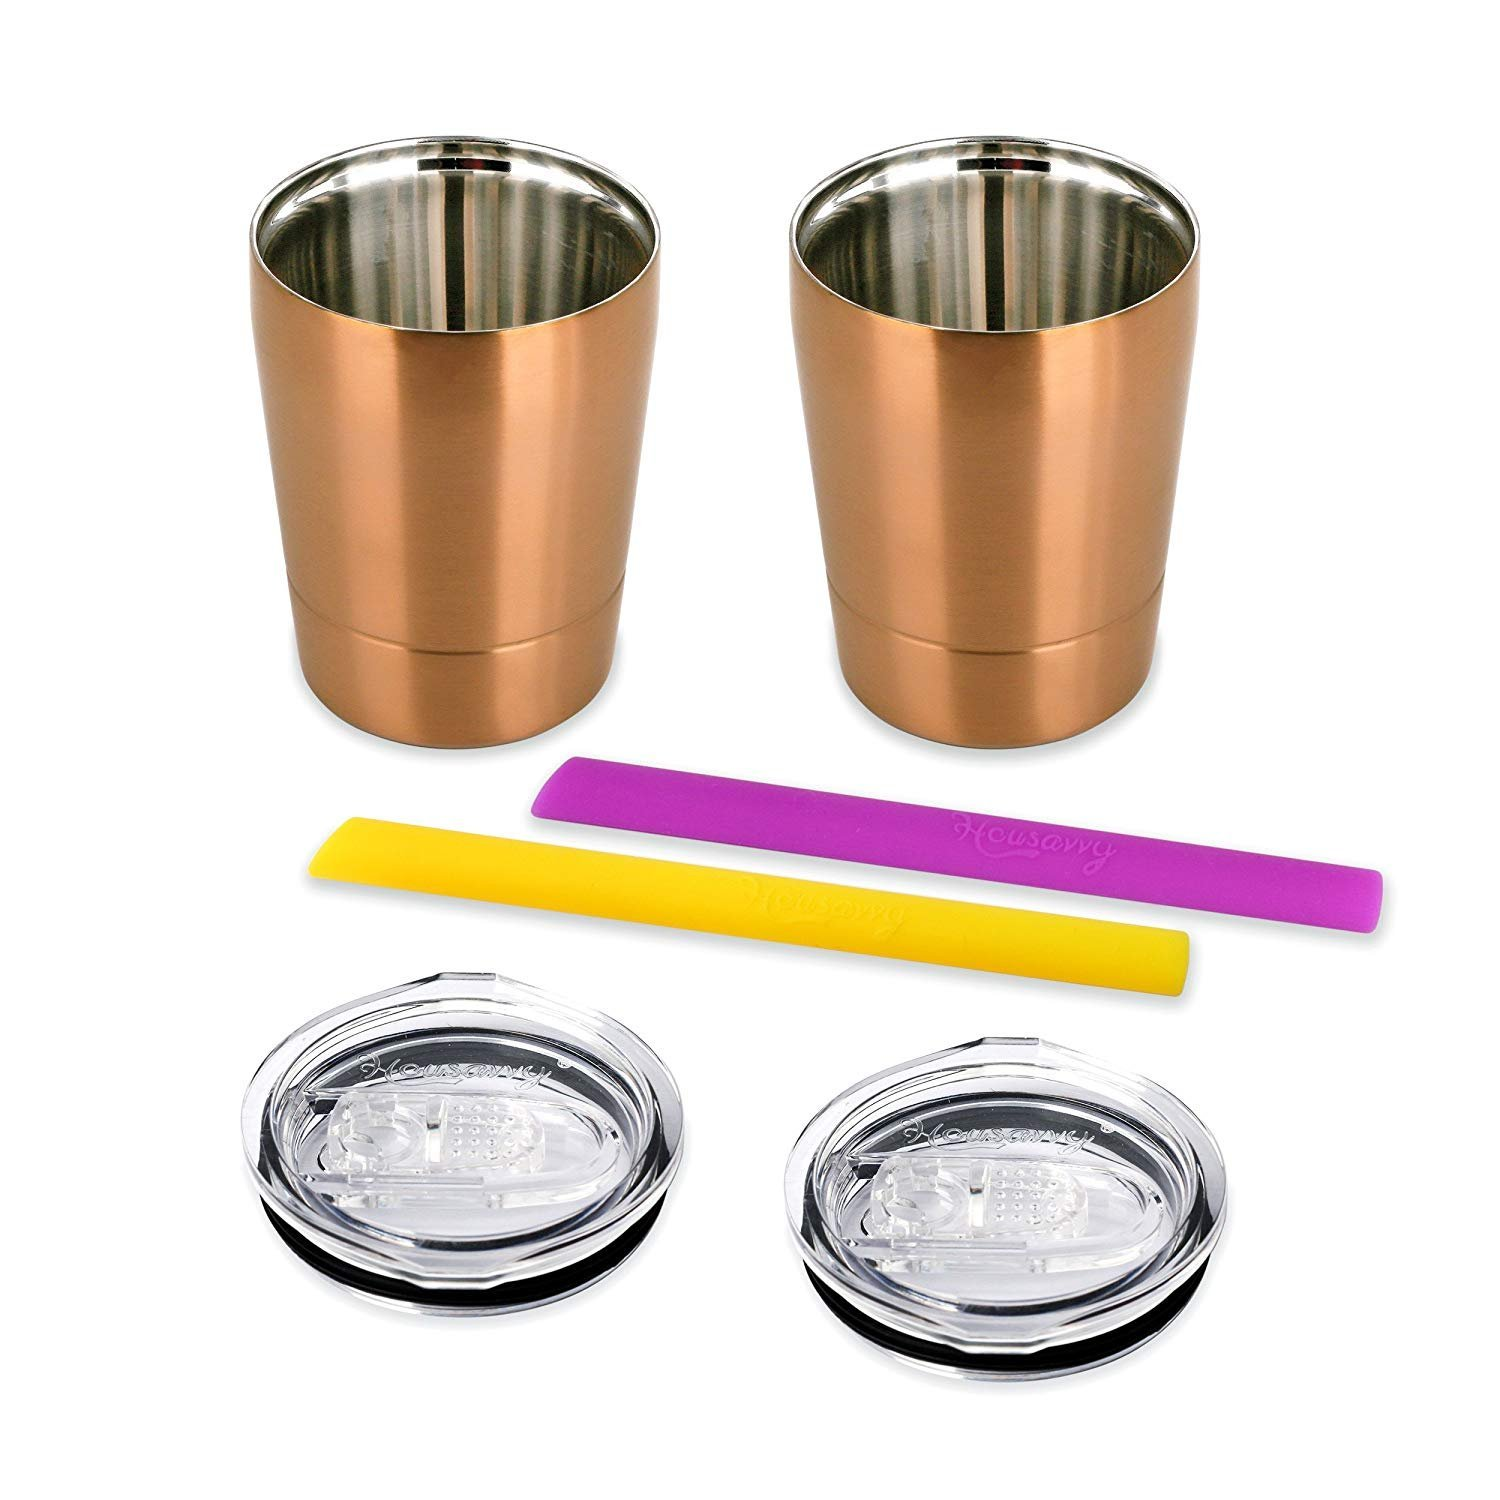 Housavvy Snack Cups For Toddlers With Lids And Straws Double Walled Boon Sippy Cup Tall 10oz Green Stainless Steel Set Of 2 Golden Baby